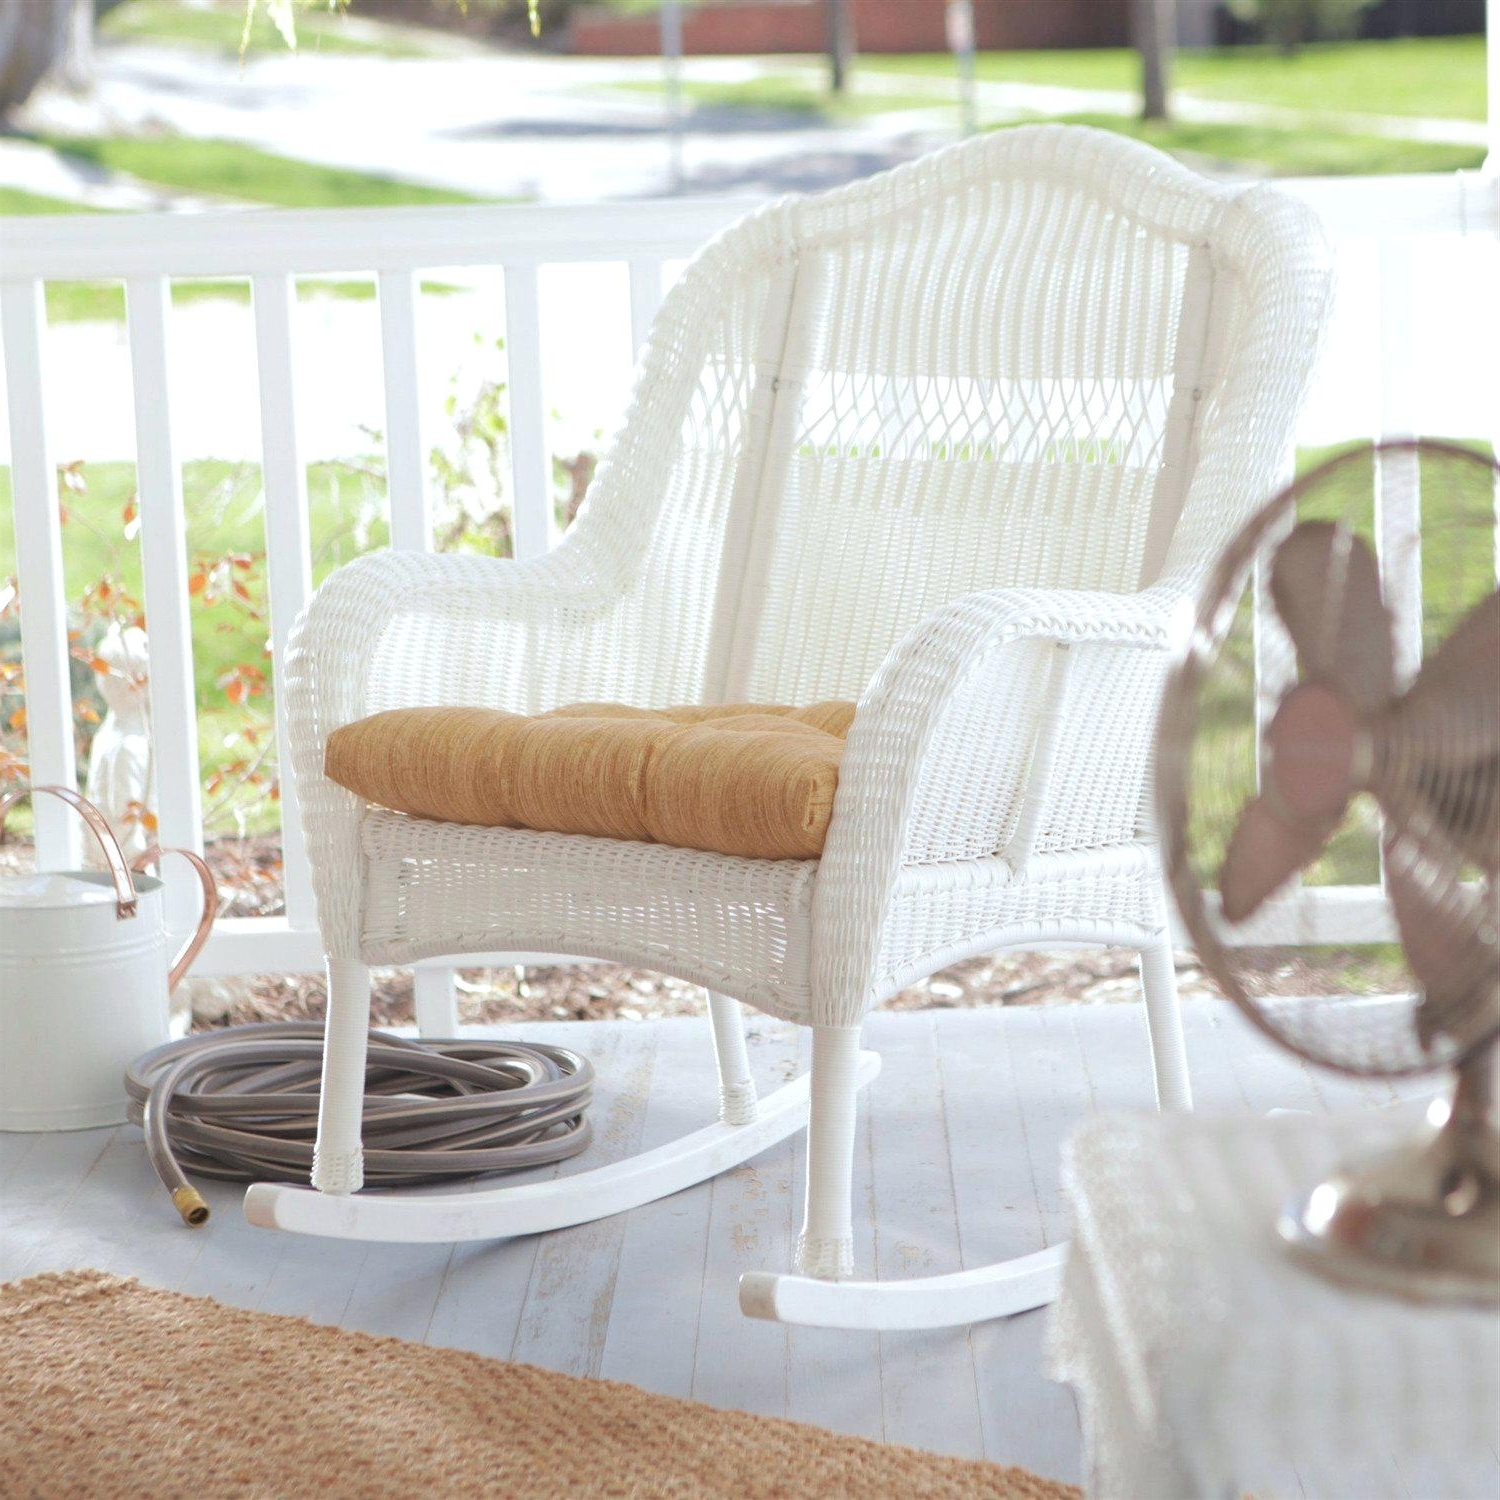 White Wicker Rocking Chair For Nursery Canada Uk – Concassage Pertaining To Trendy White Wicker Rocking Chair For Nursery (View 13 of 20)